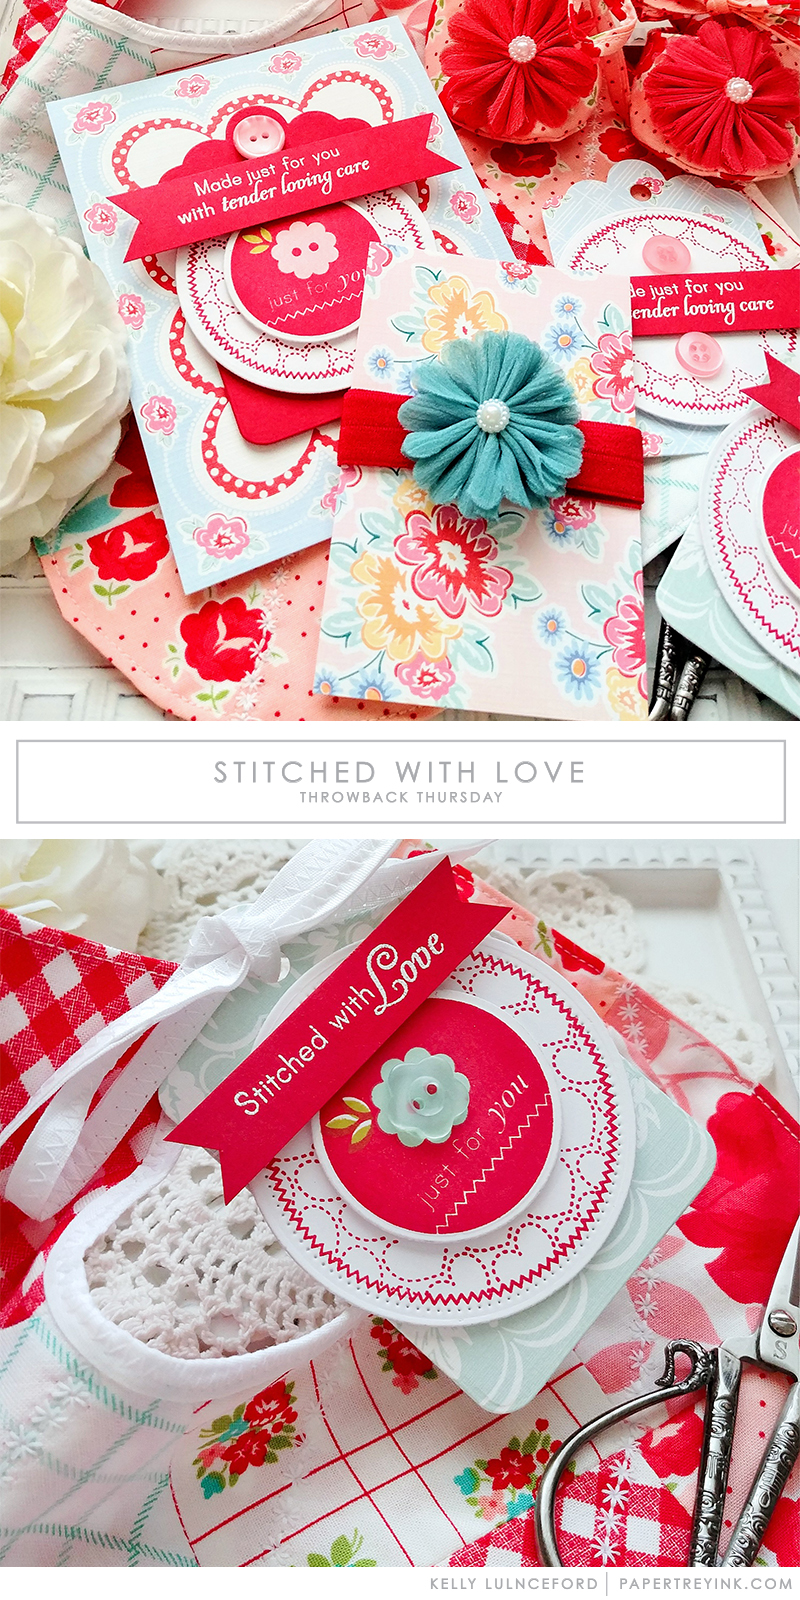 Throwback Thursday: Stitched with Love